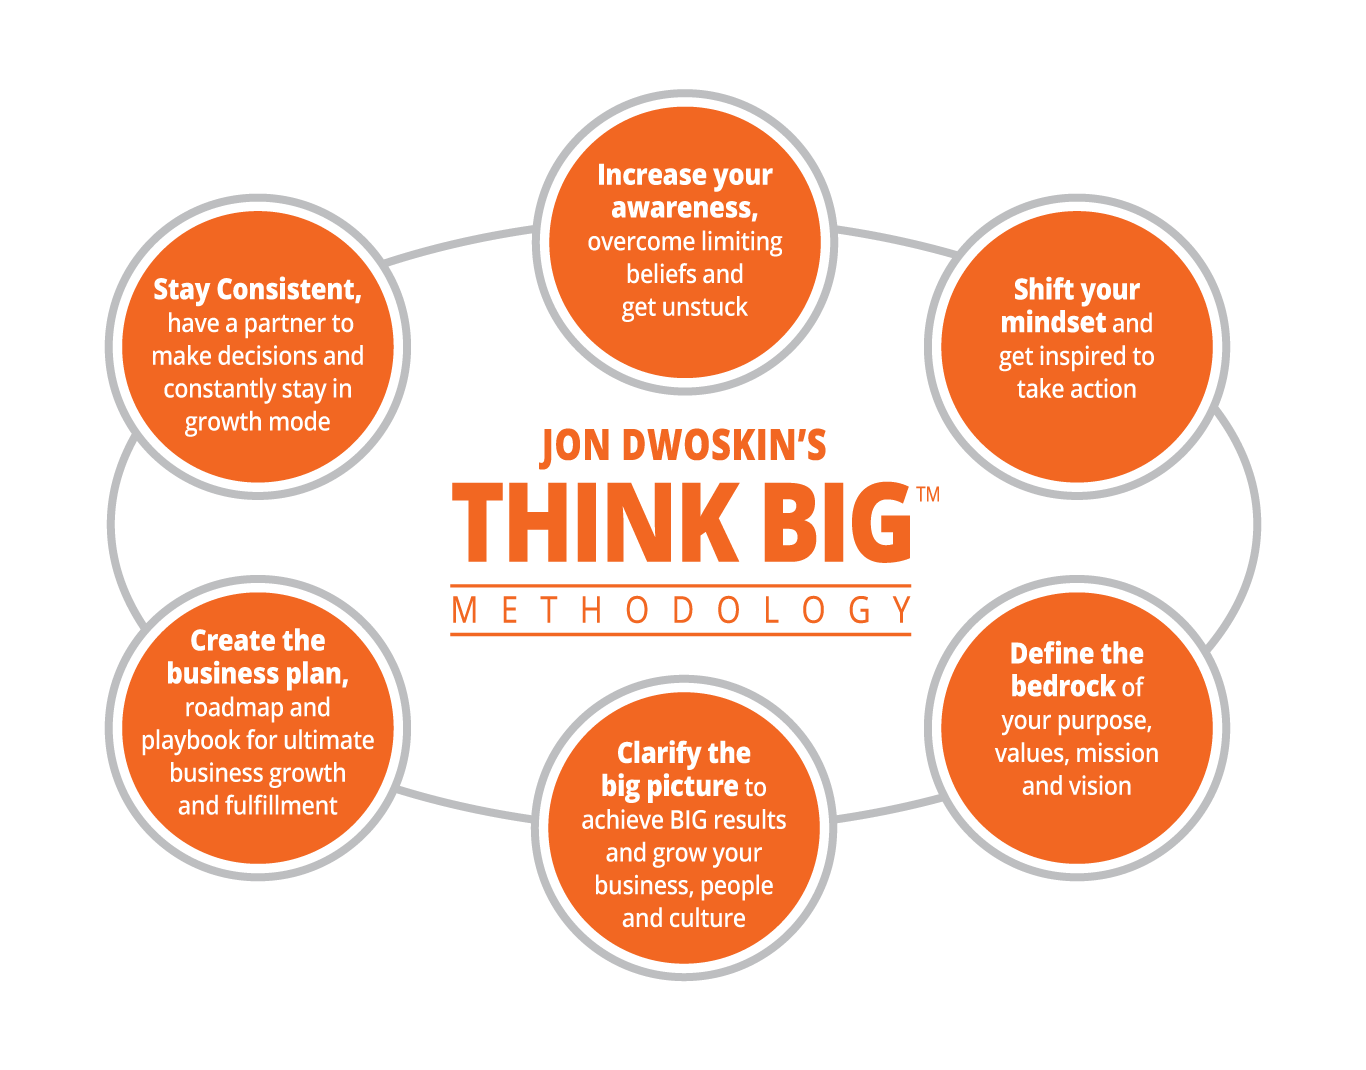 Jon Dwoskin's THINK BIG Methodology diagram